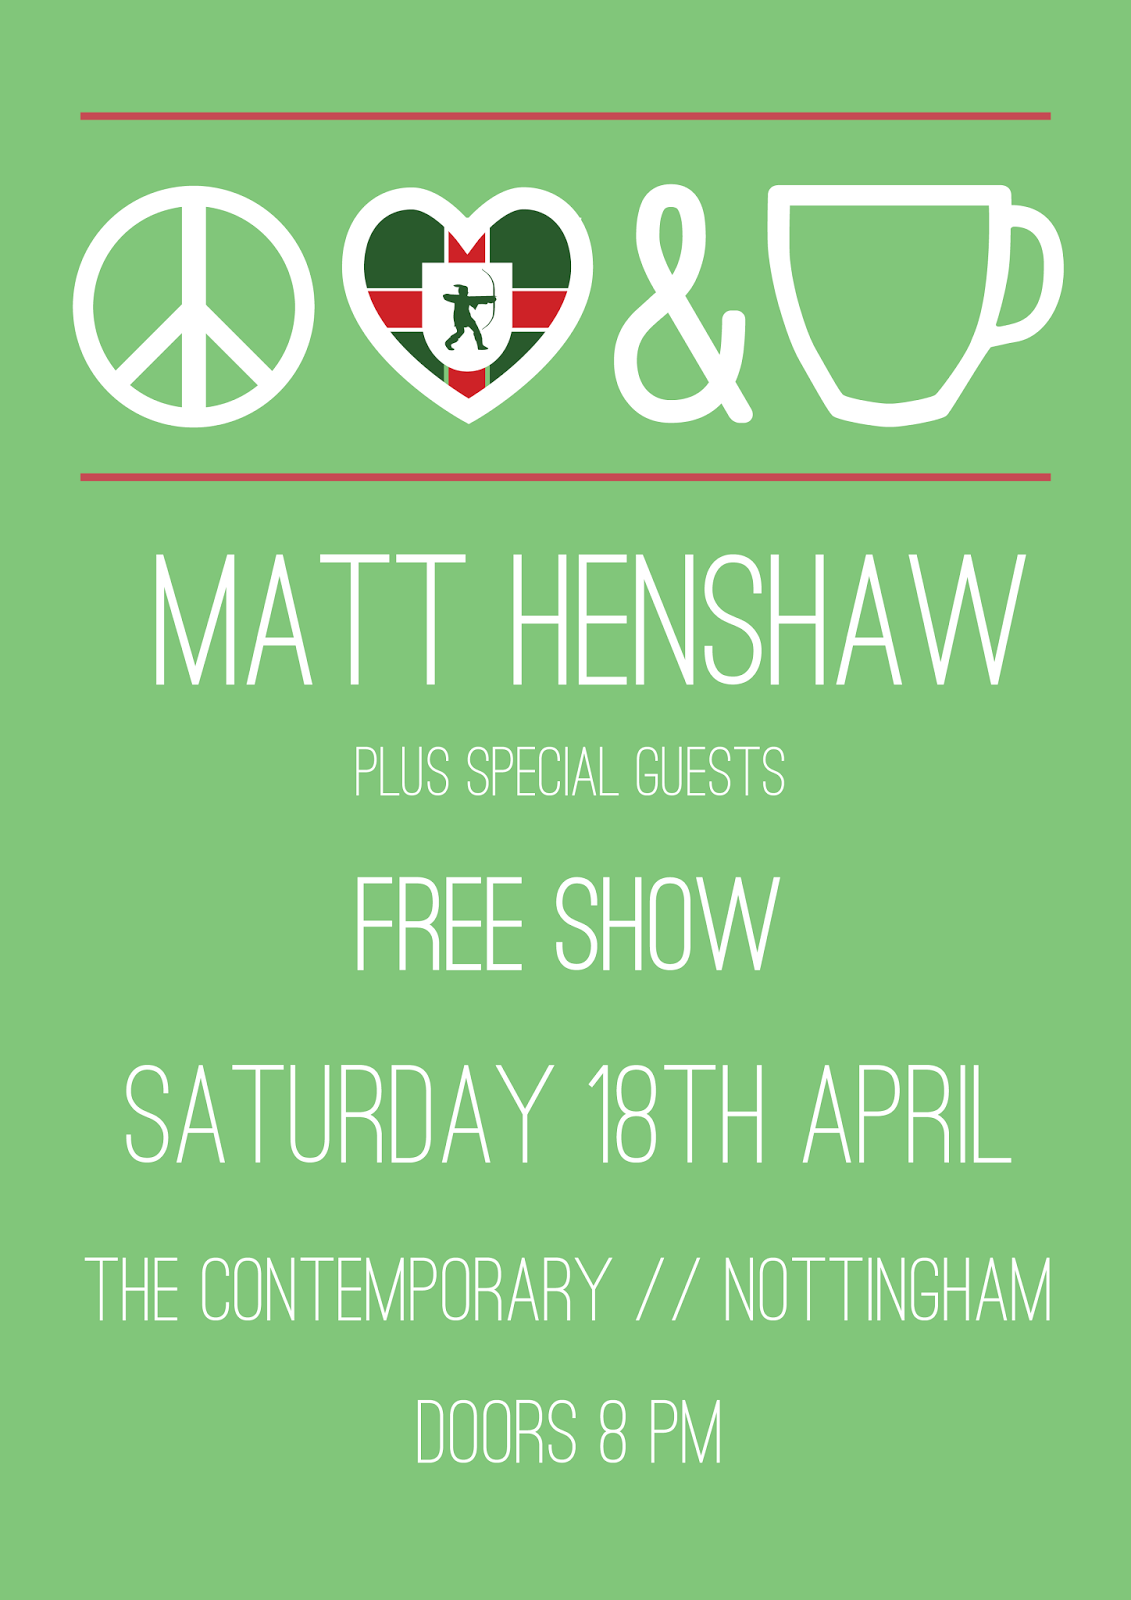 matt henshaw live in nottingham